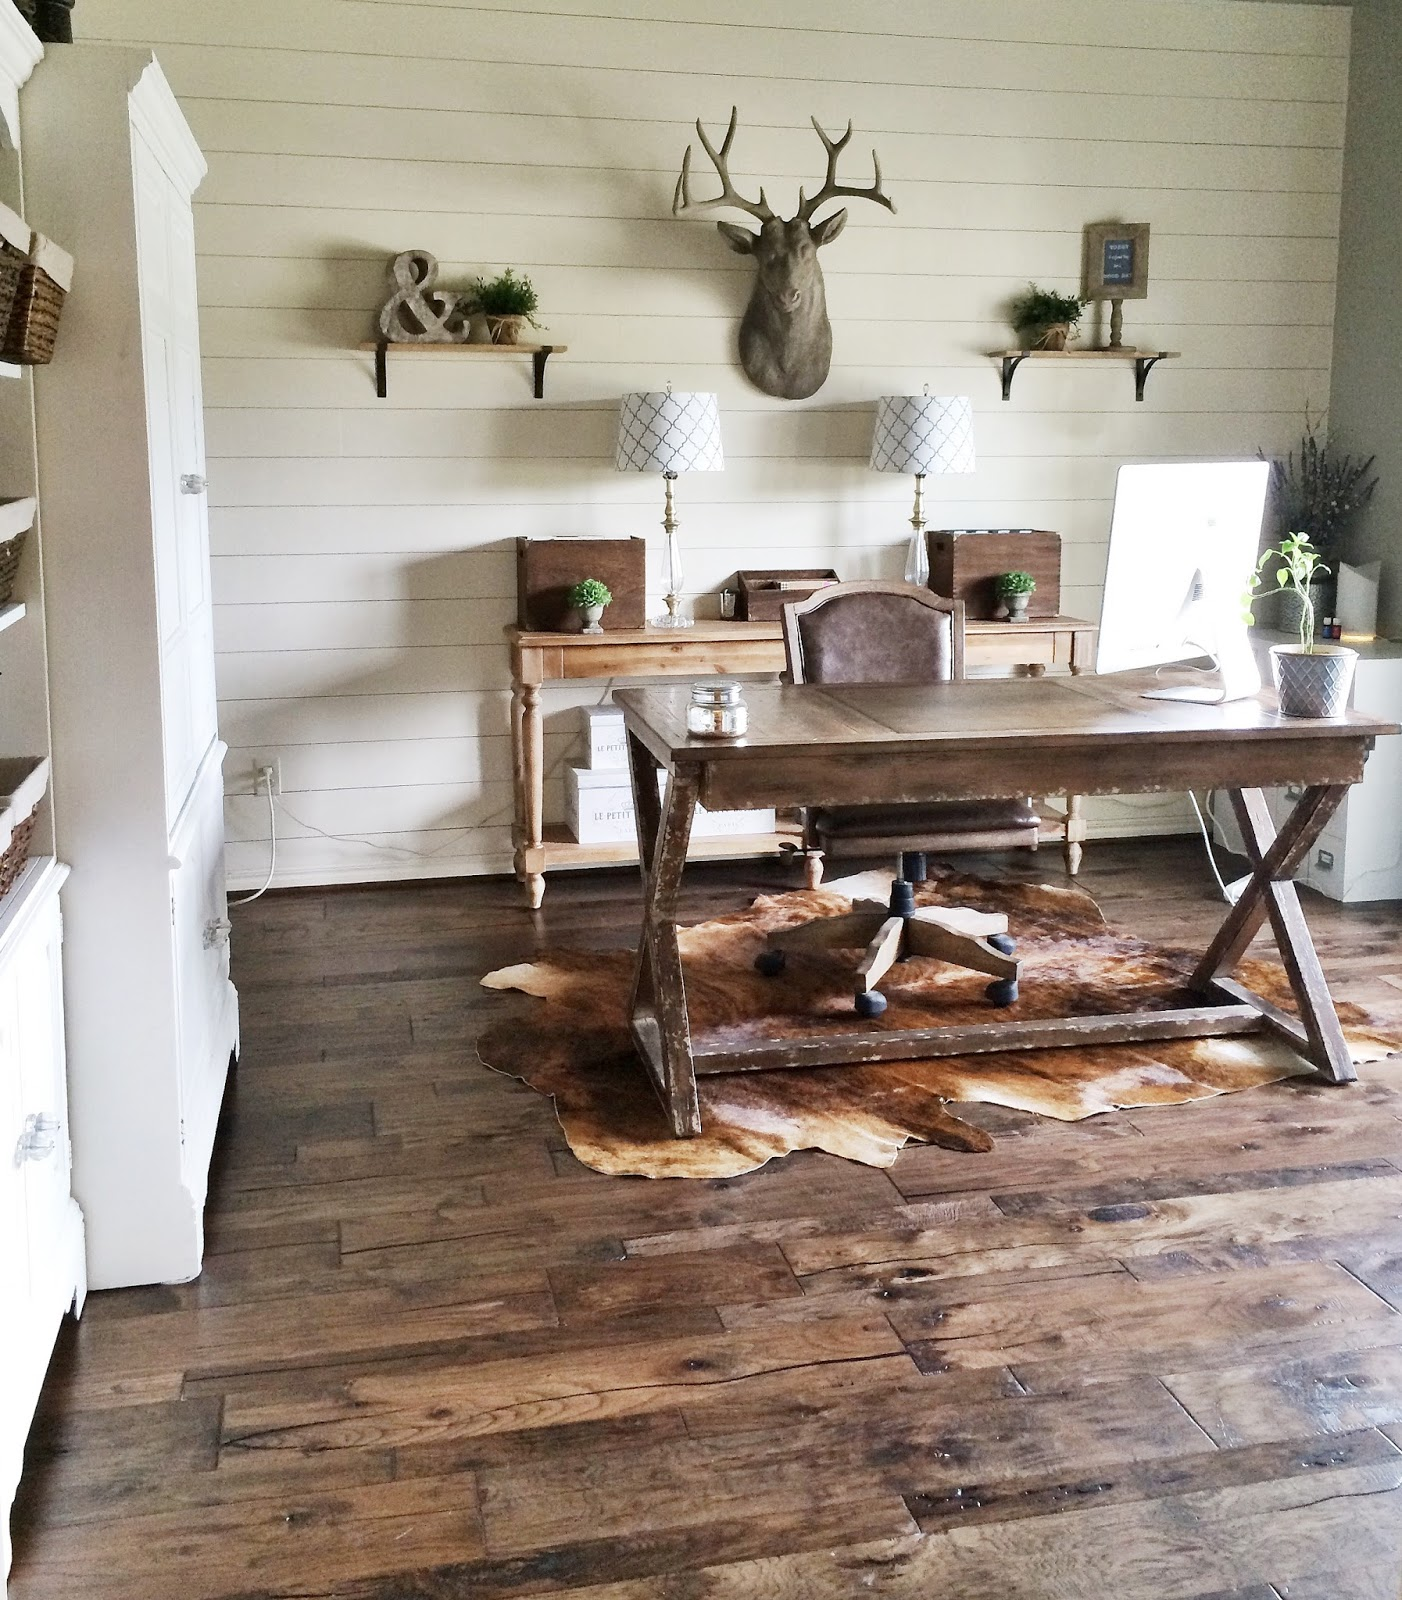 Bedroom Accent Wall Remodelaholic How To Install A Shiplap Wall Rustic